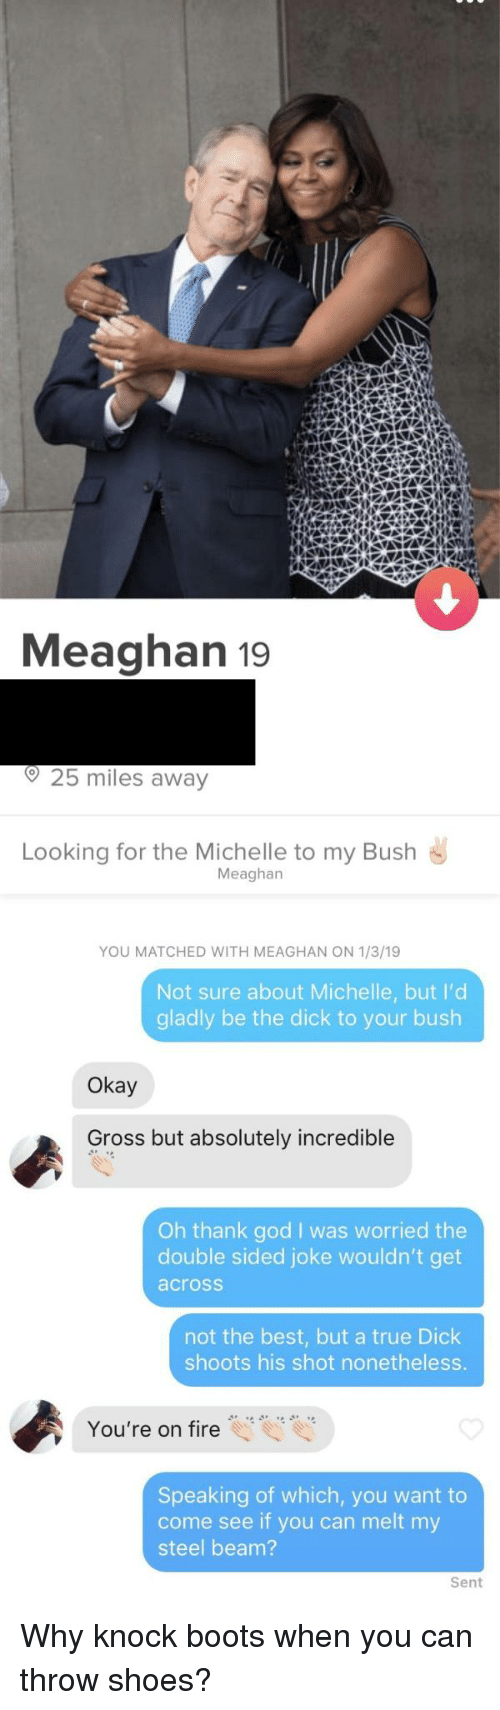 Oh Thank God: Meaghan 19  o25 miles away  Looking for the Michelle to my Bush  Meaghan  YOU MATCHED WITH MEAGHAN ON 1/3/19  Not sure about Michelle, but I'd  gladly be the dick to your bush  Okay  Gross but absolutely incredible  Oh thank god I was worried the  double sided joke wouldn't get  across  not the best, but a true Dick  shoots his shot nonetheless.  You're on fire  Speaking of which, you want to  come see if you can melt my  steel beam?  Sent Why knock boots when you can throw shoes?